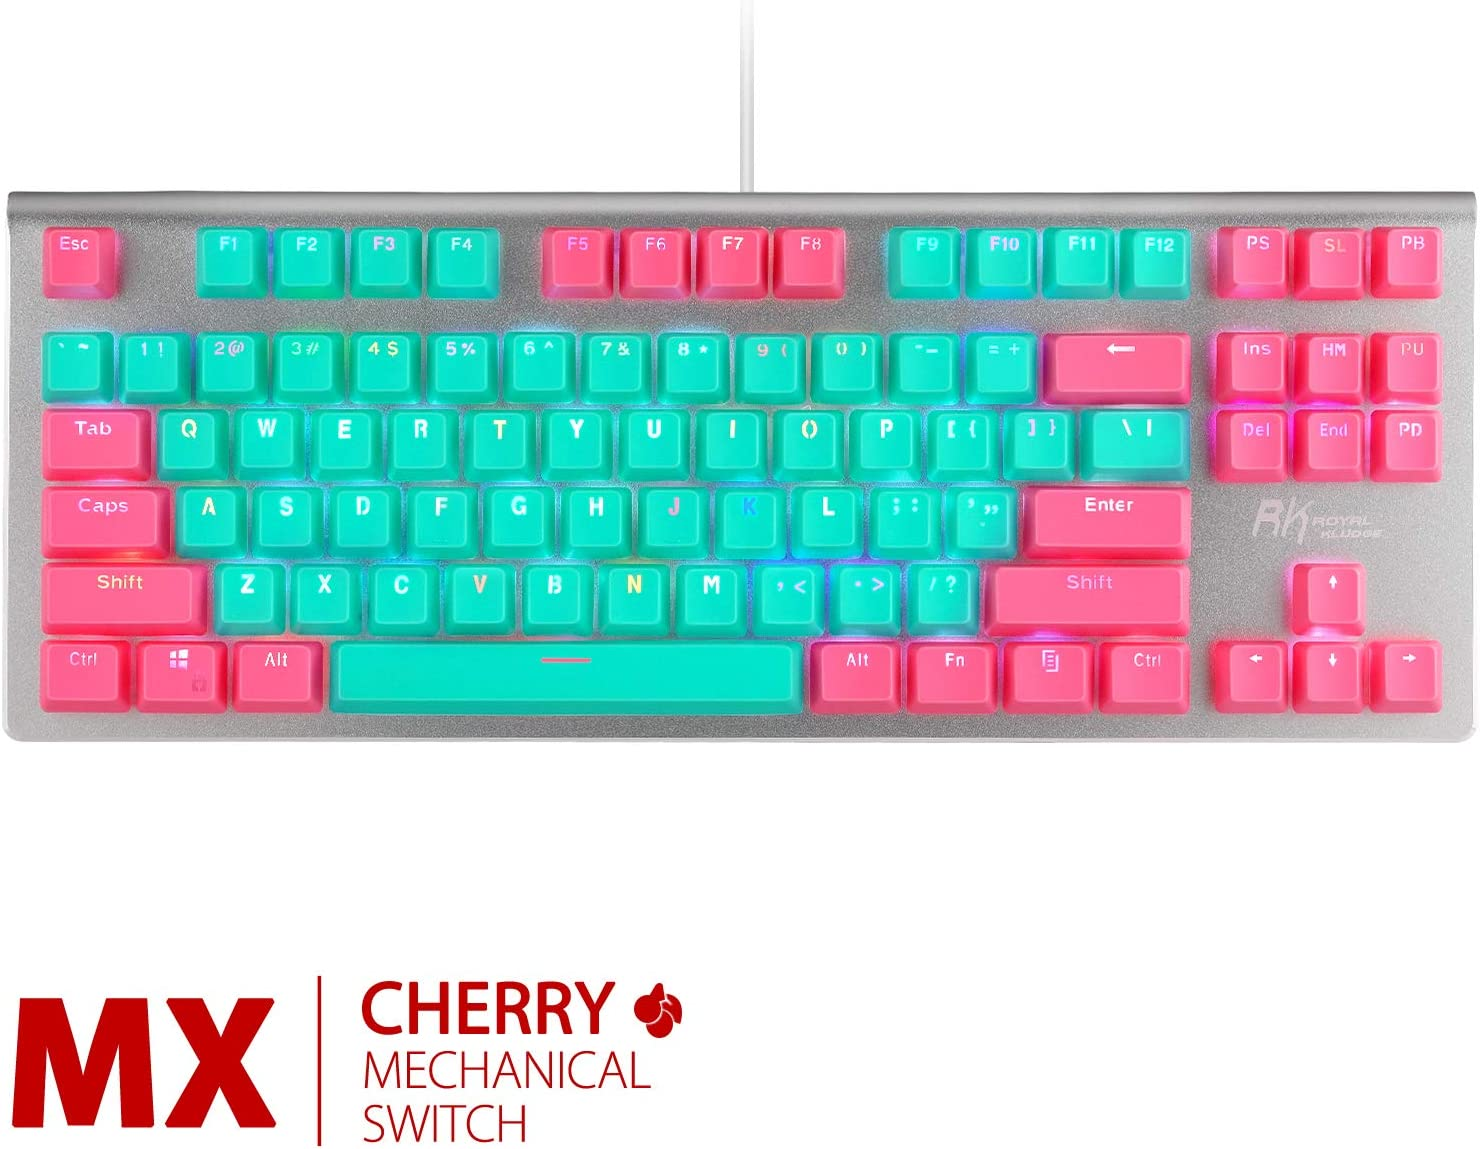 RK87 Pro RGB Mechanical Keyboard, Wired/Wireless Bluetooth 87 Keys Compact Gaming/Office Keyboard for iOS Android Windows with 85% Double Shot PBT Keycaps TKL Keyboard (Cherry MX Blue, Miami)